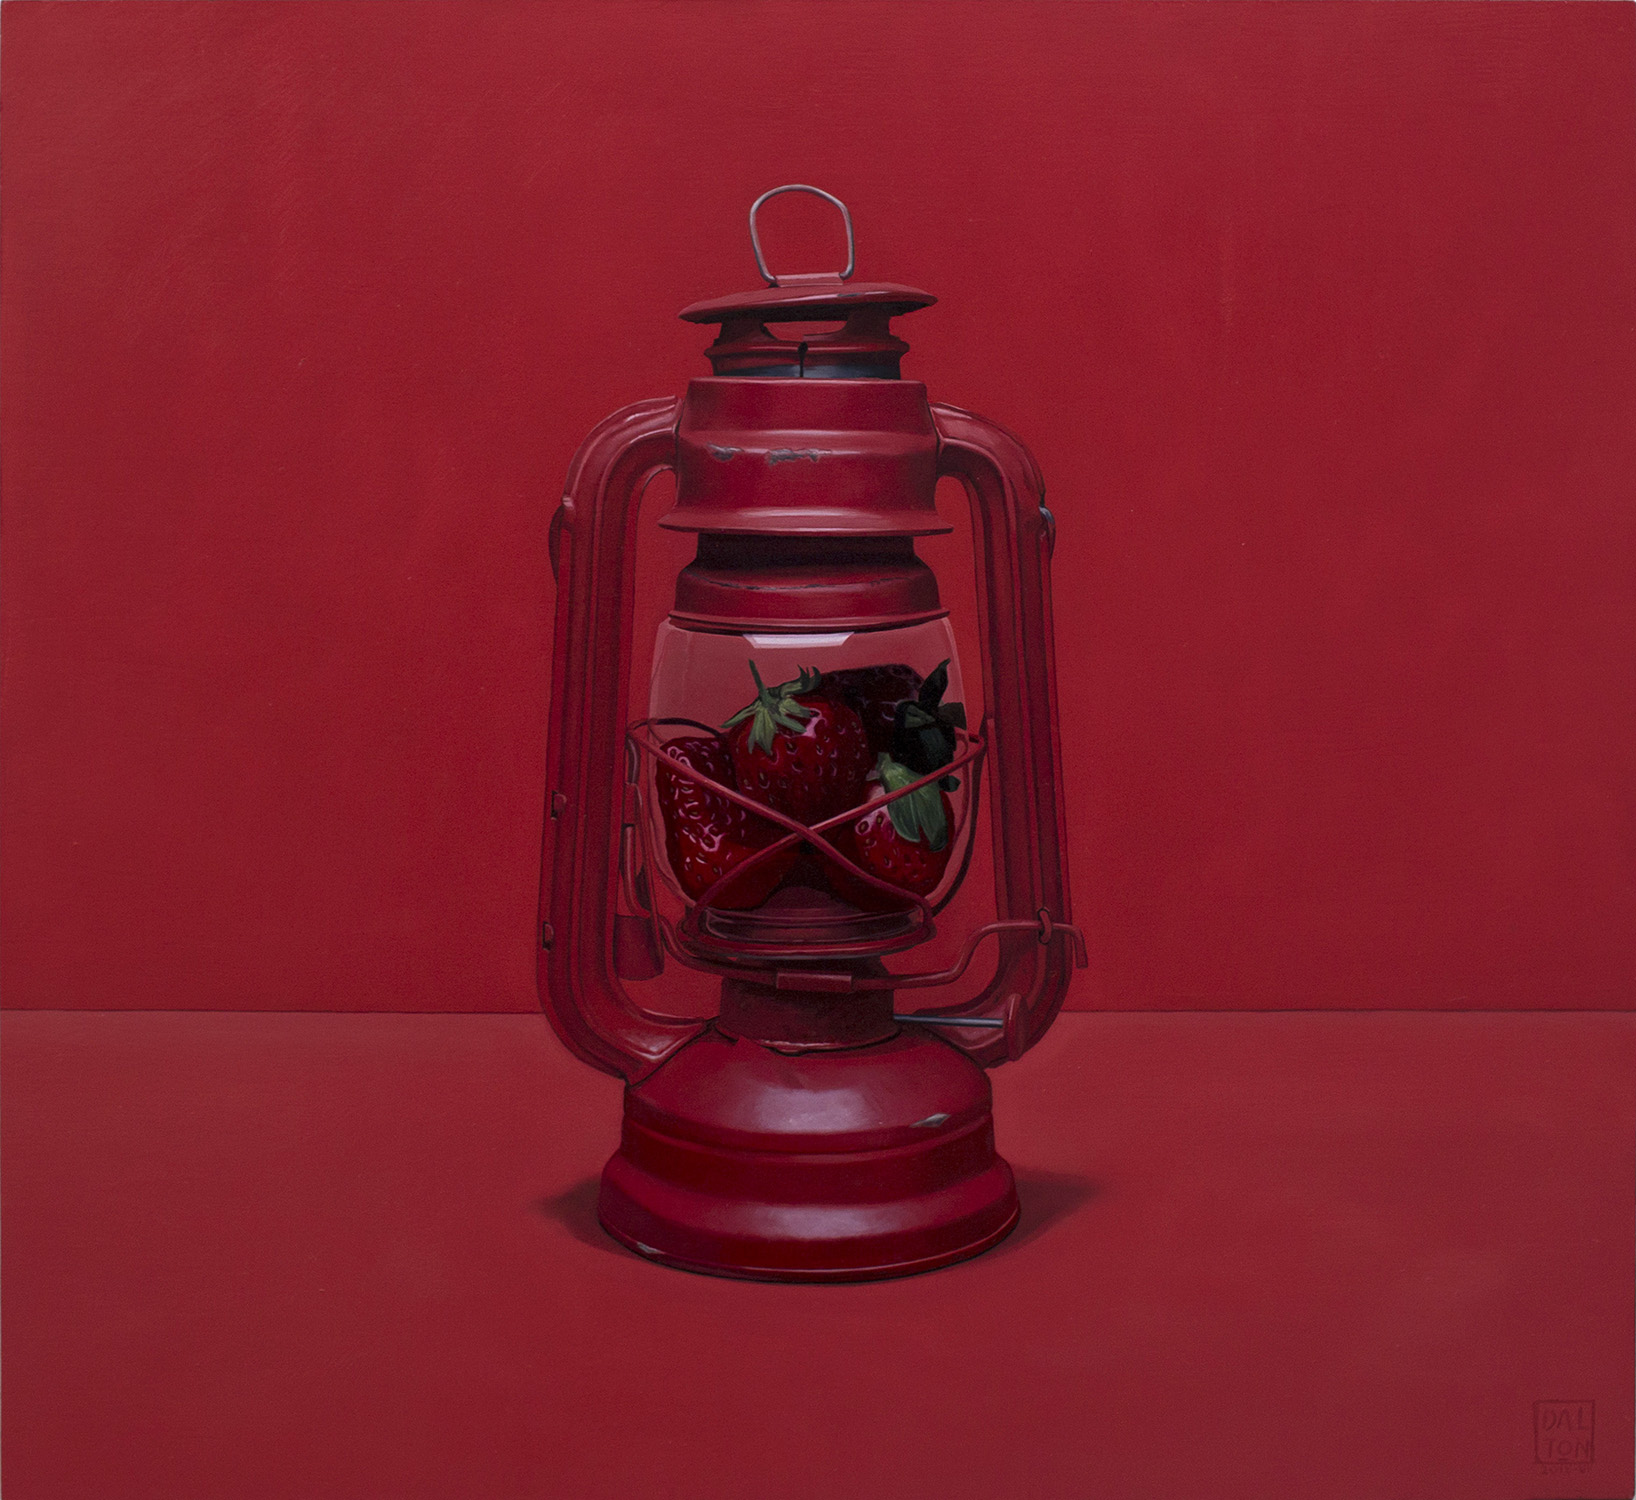 The Strawberry Lamp Jonathan Dalton 55x60cm Oil on board 05.jpg